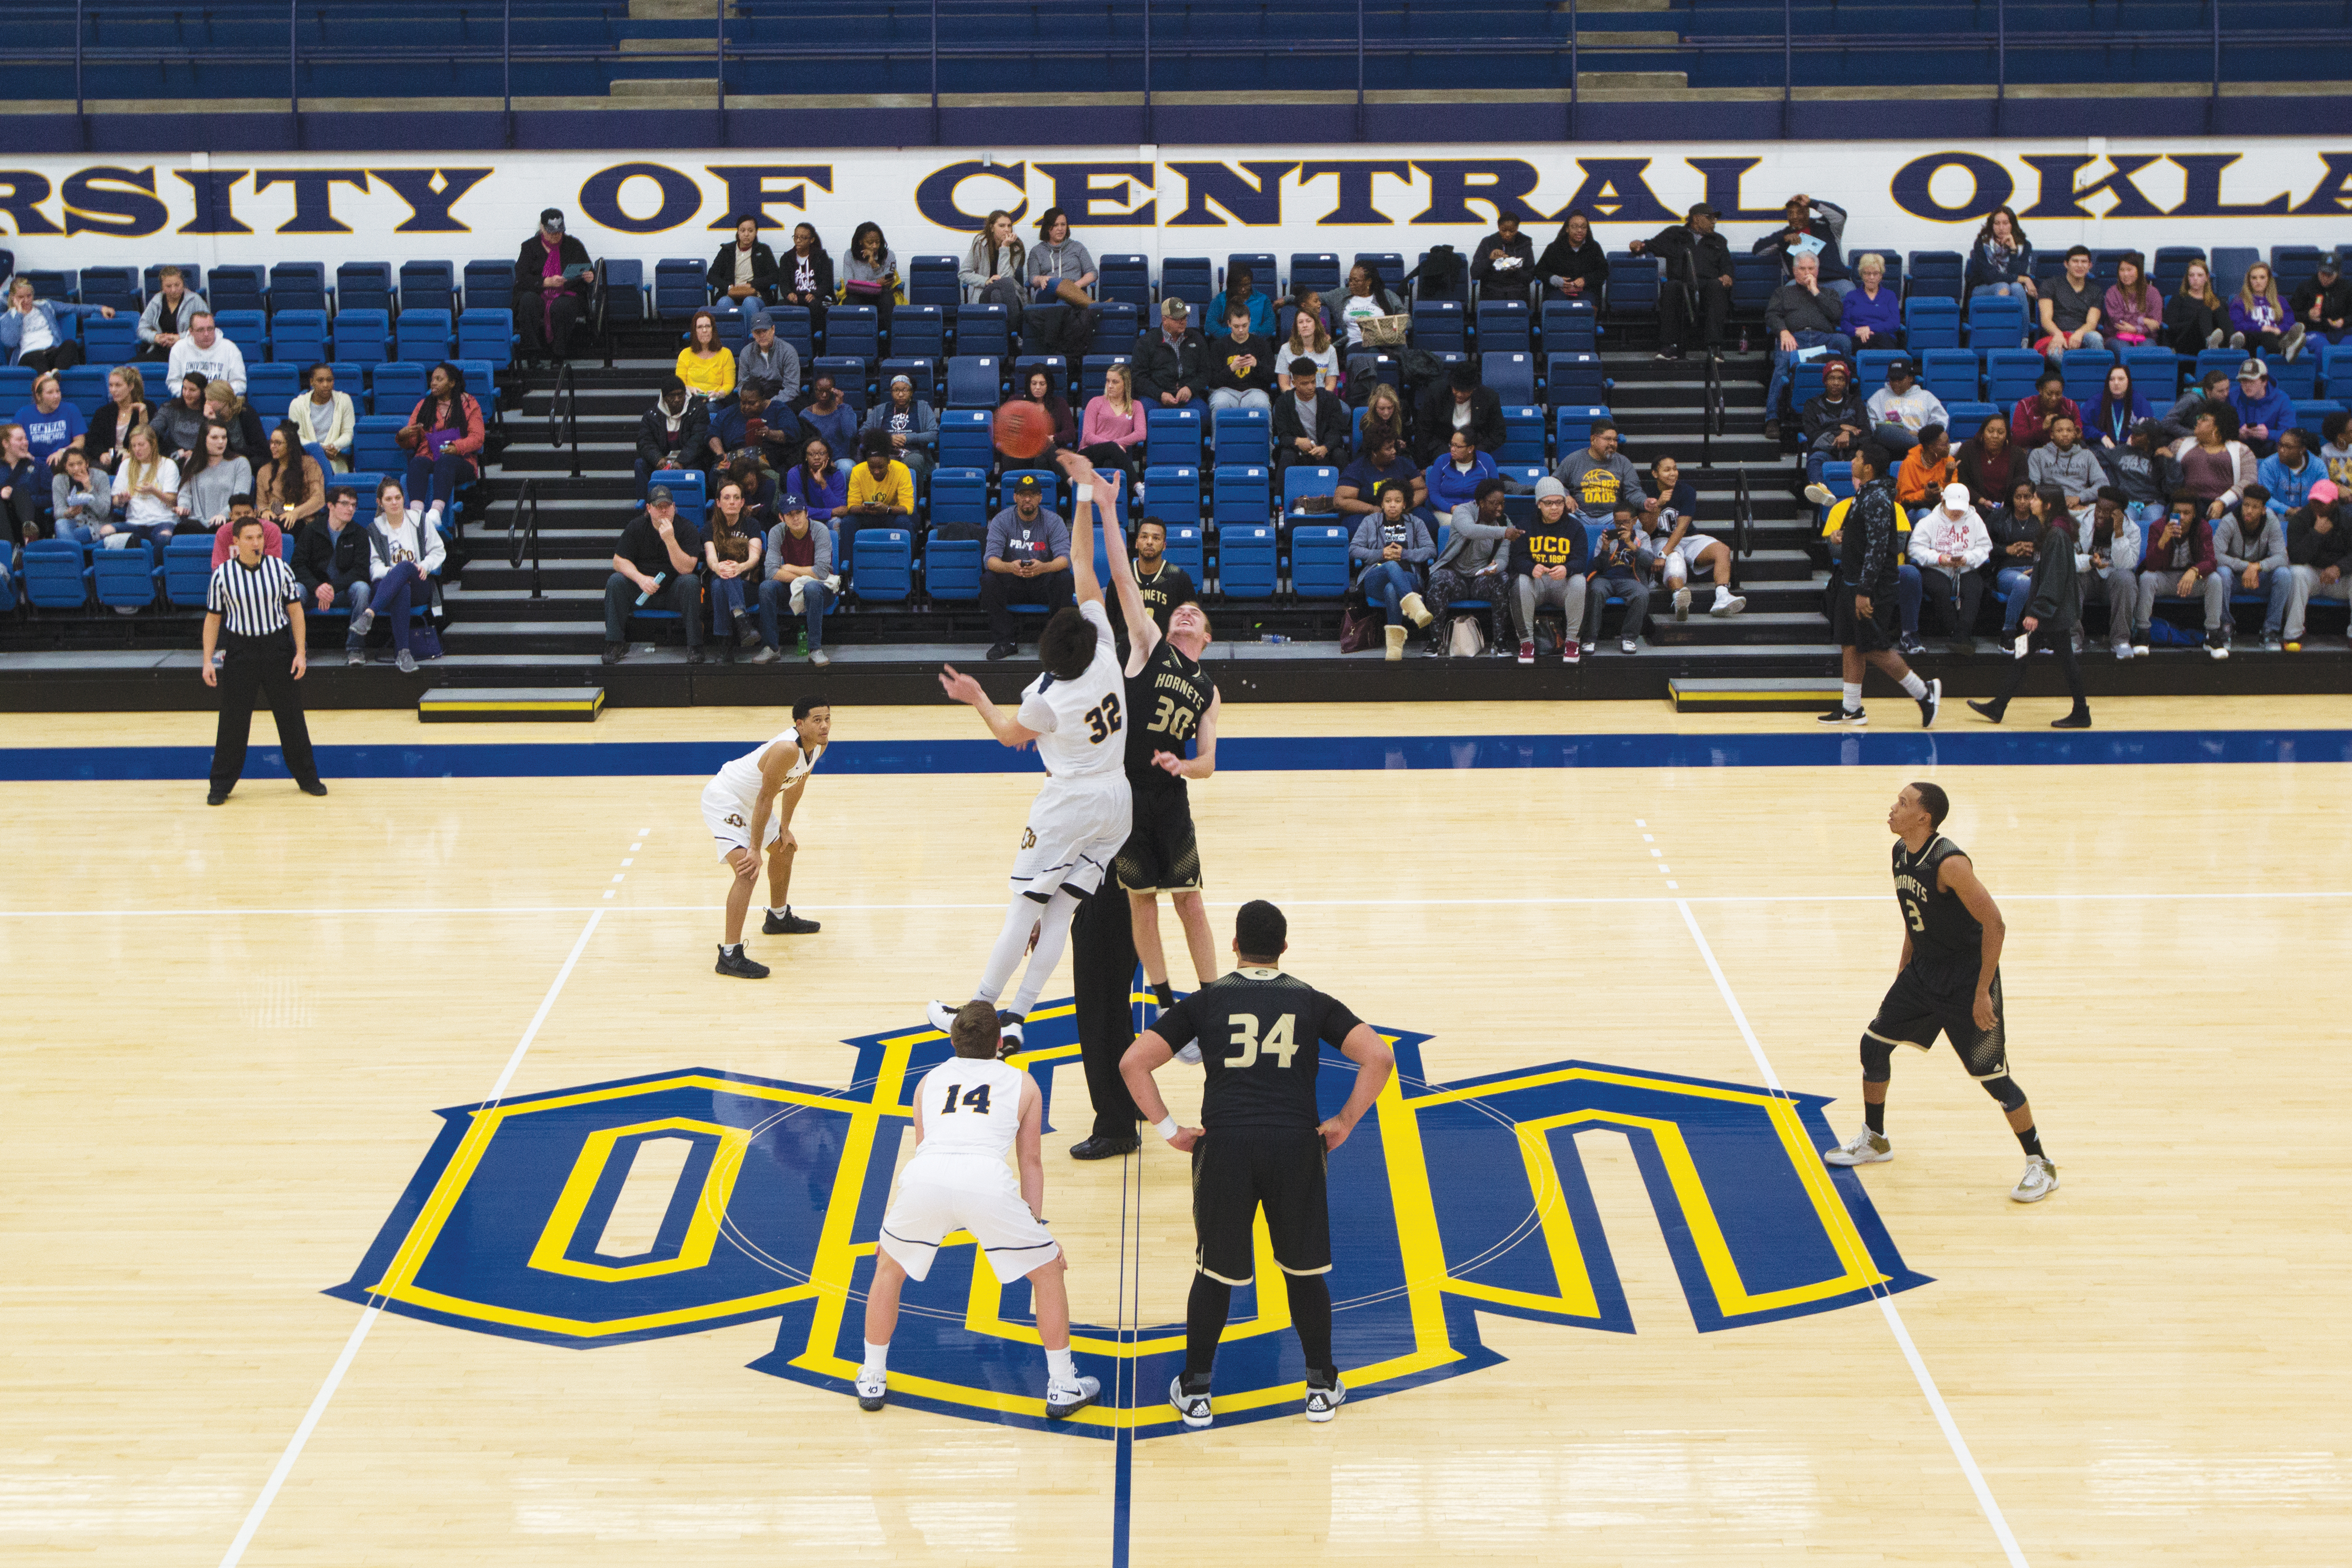 Men's basketball: Bronchos Win Big Against Emporia State